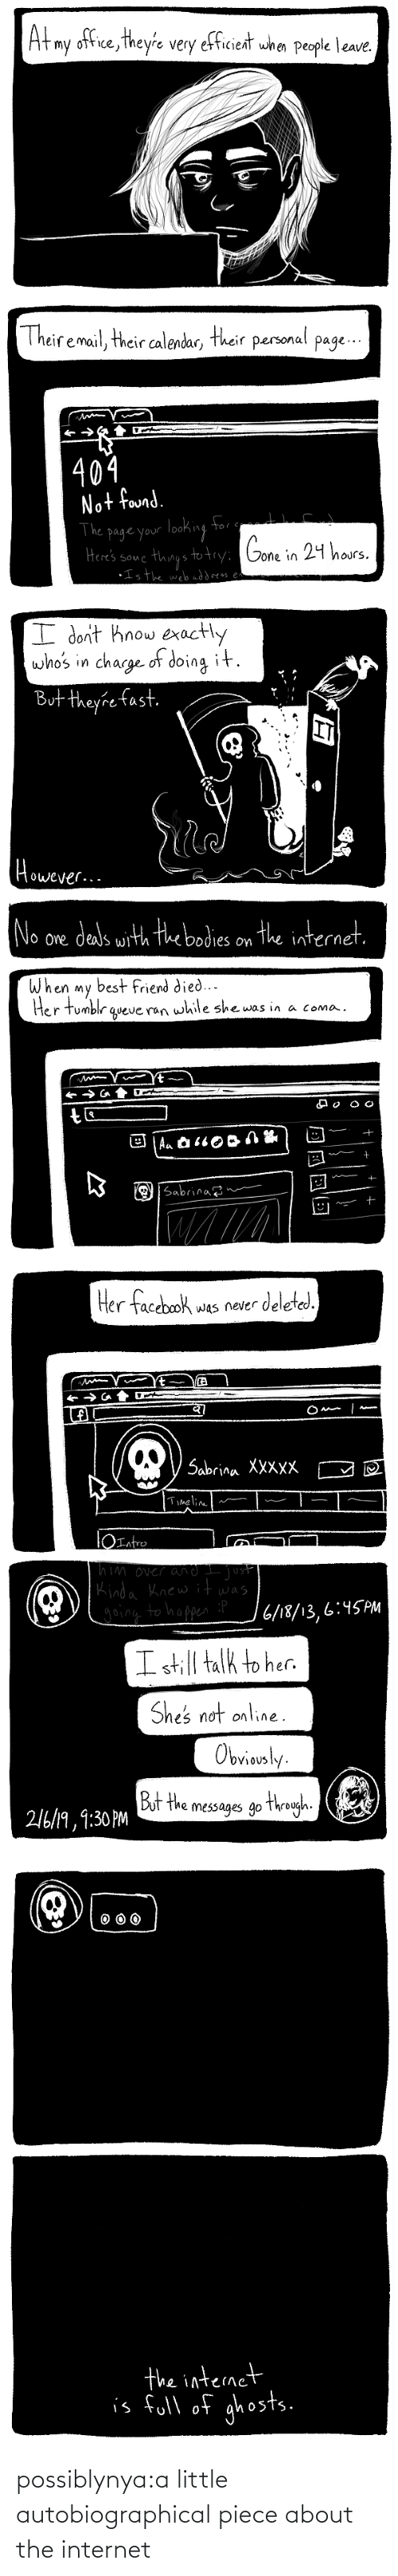 Little: possiblynya:a little autobiographical piece about the internet